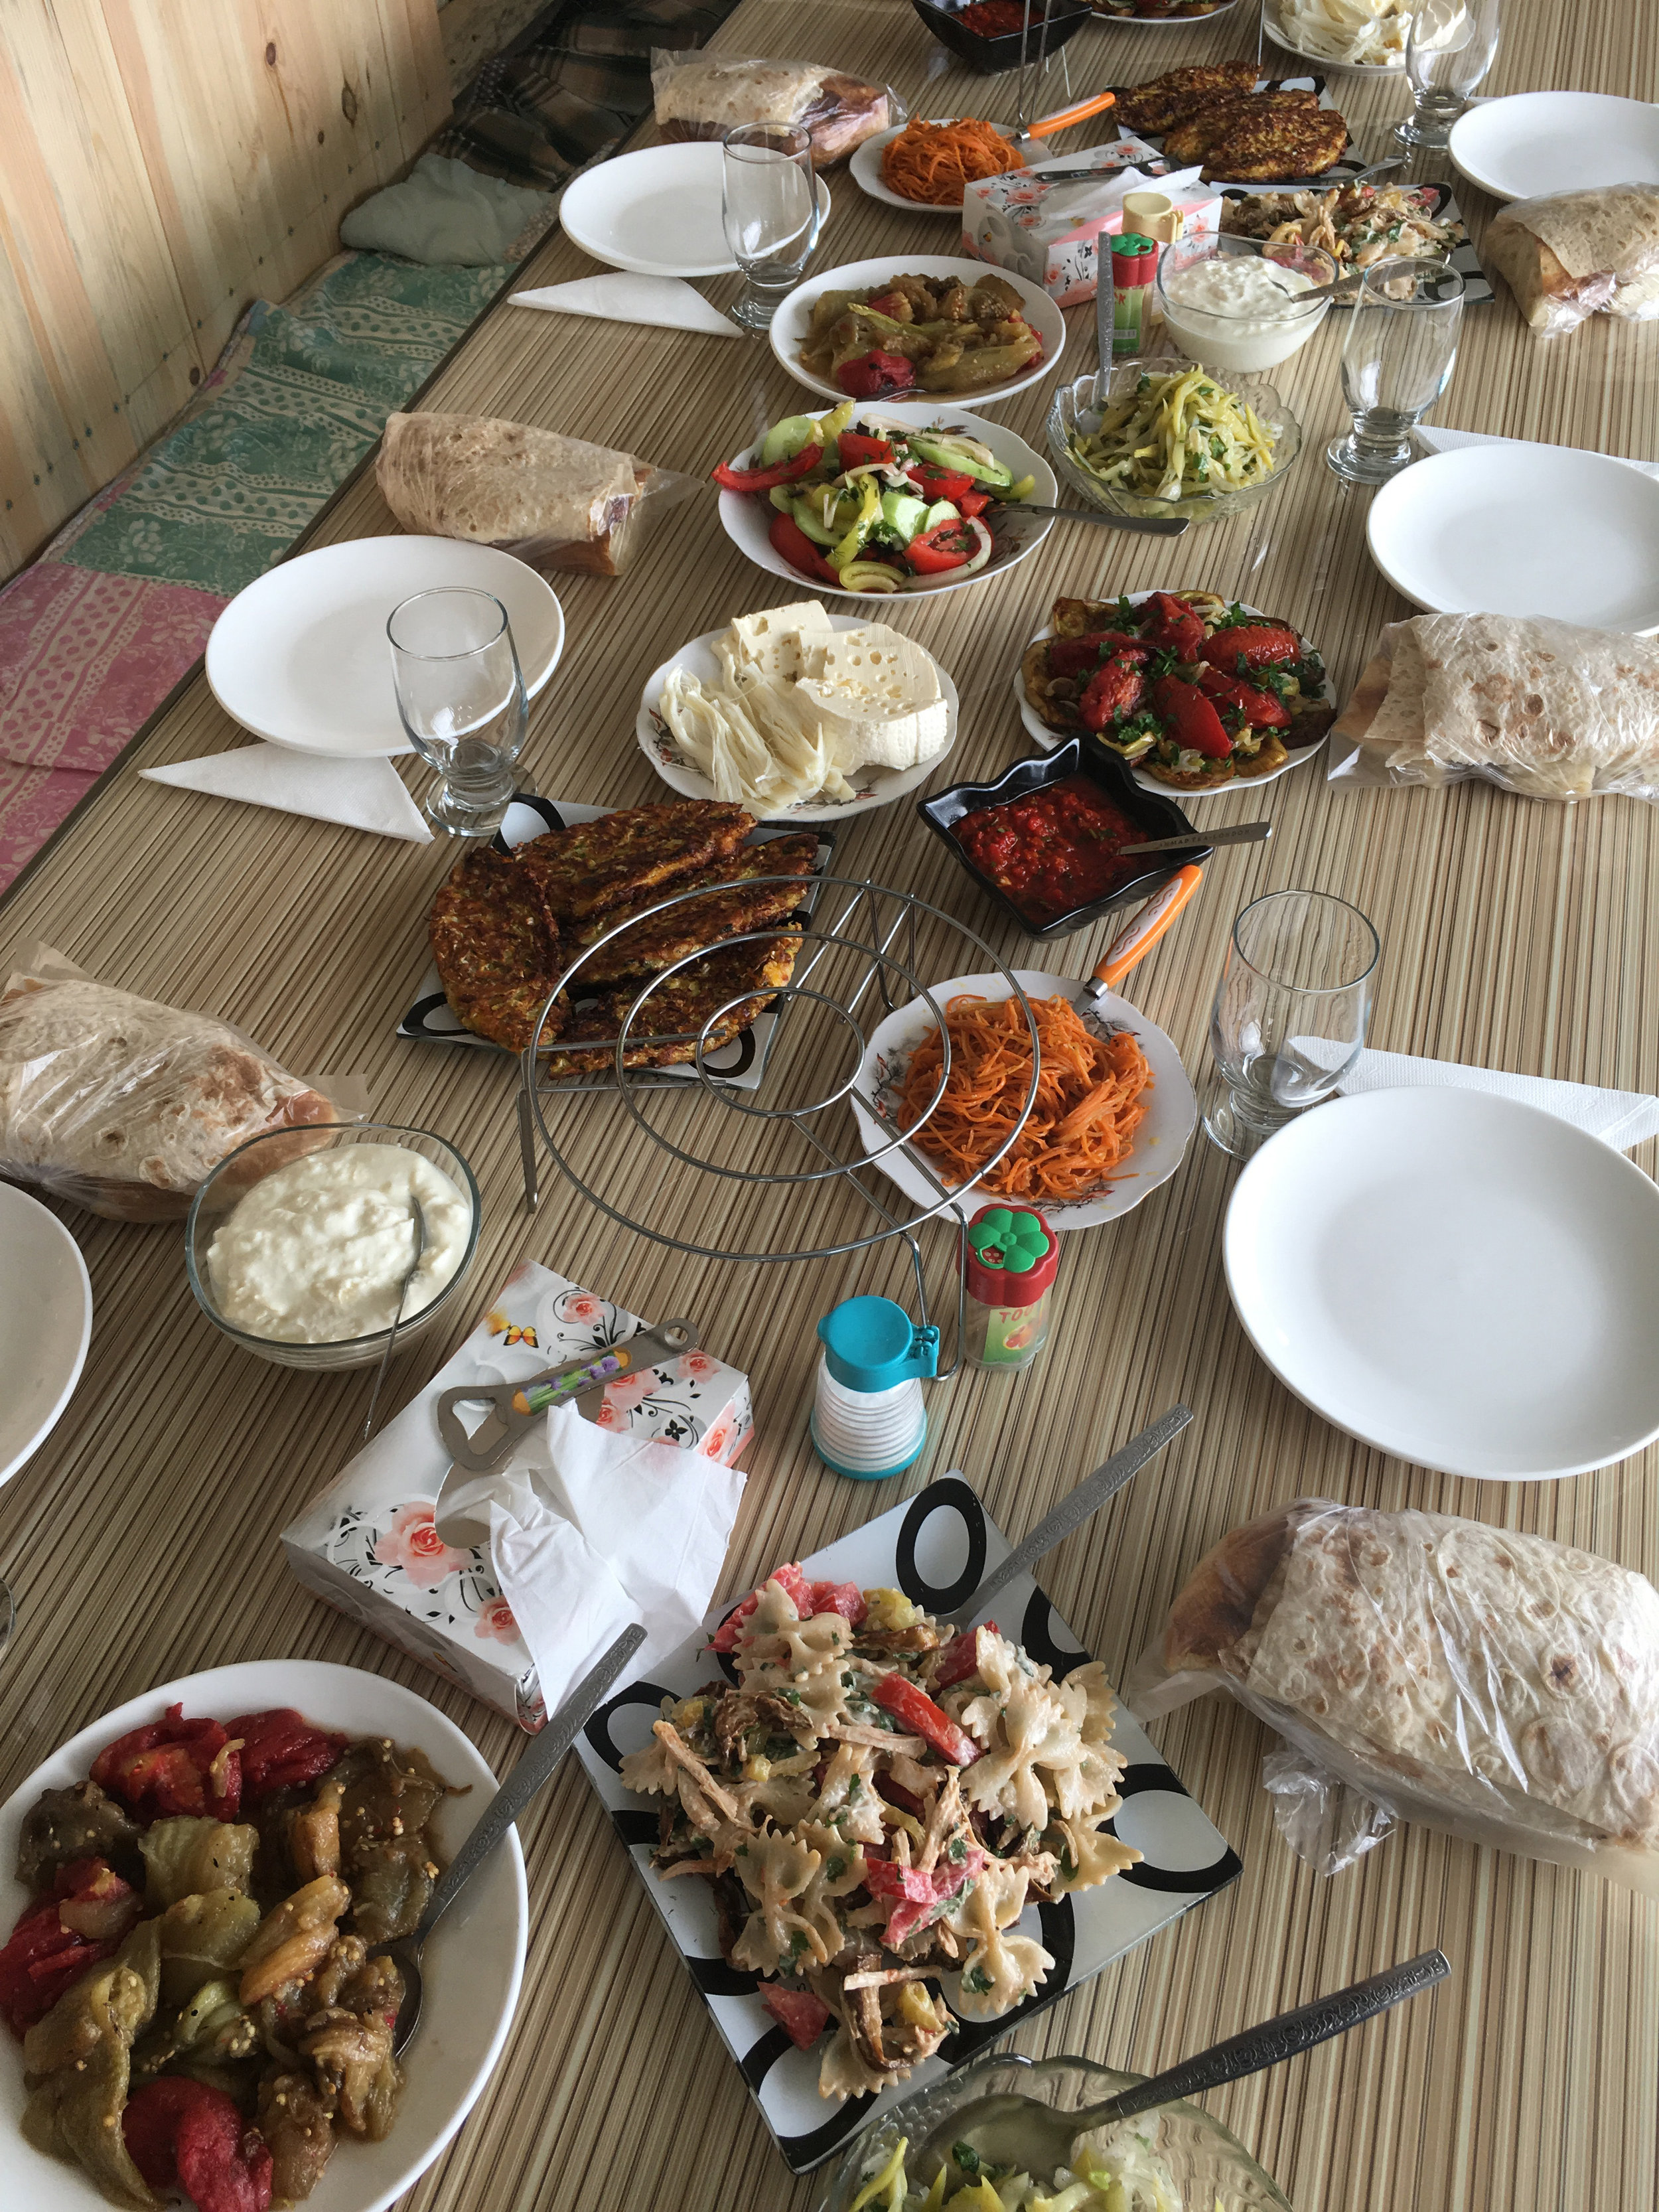 A phenomenal lunch served in a local host in Northern Armenia